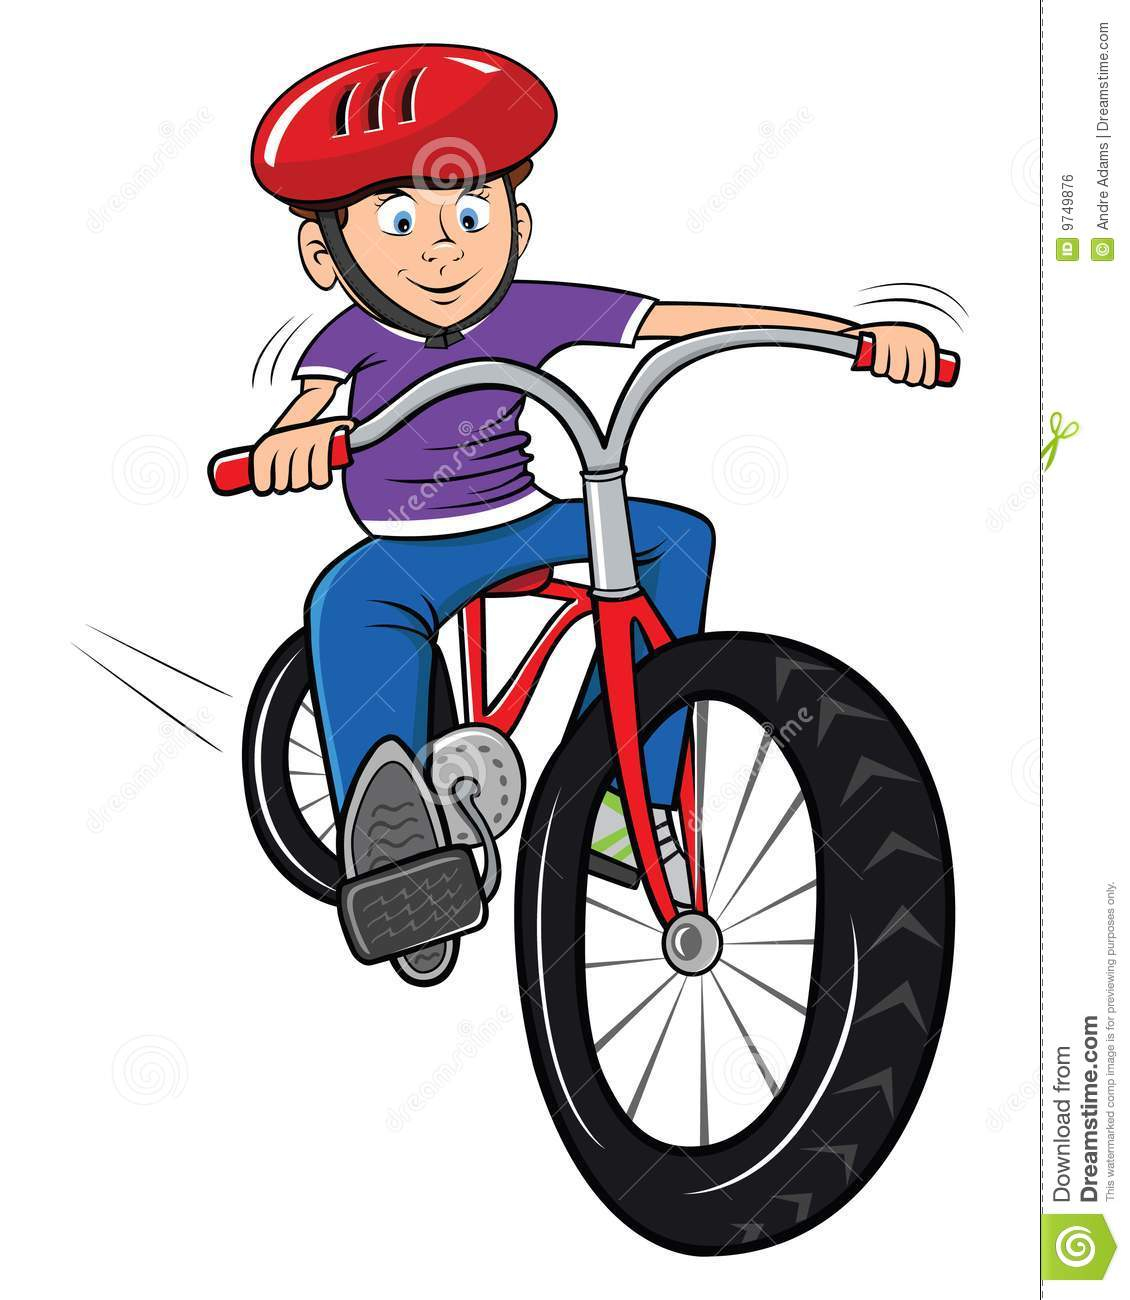 Cycling download best on. Free clipart boy riding bike with mom